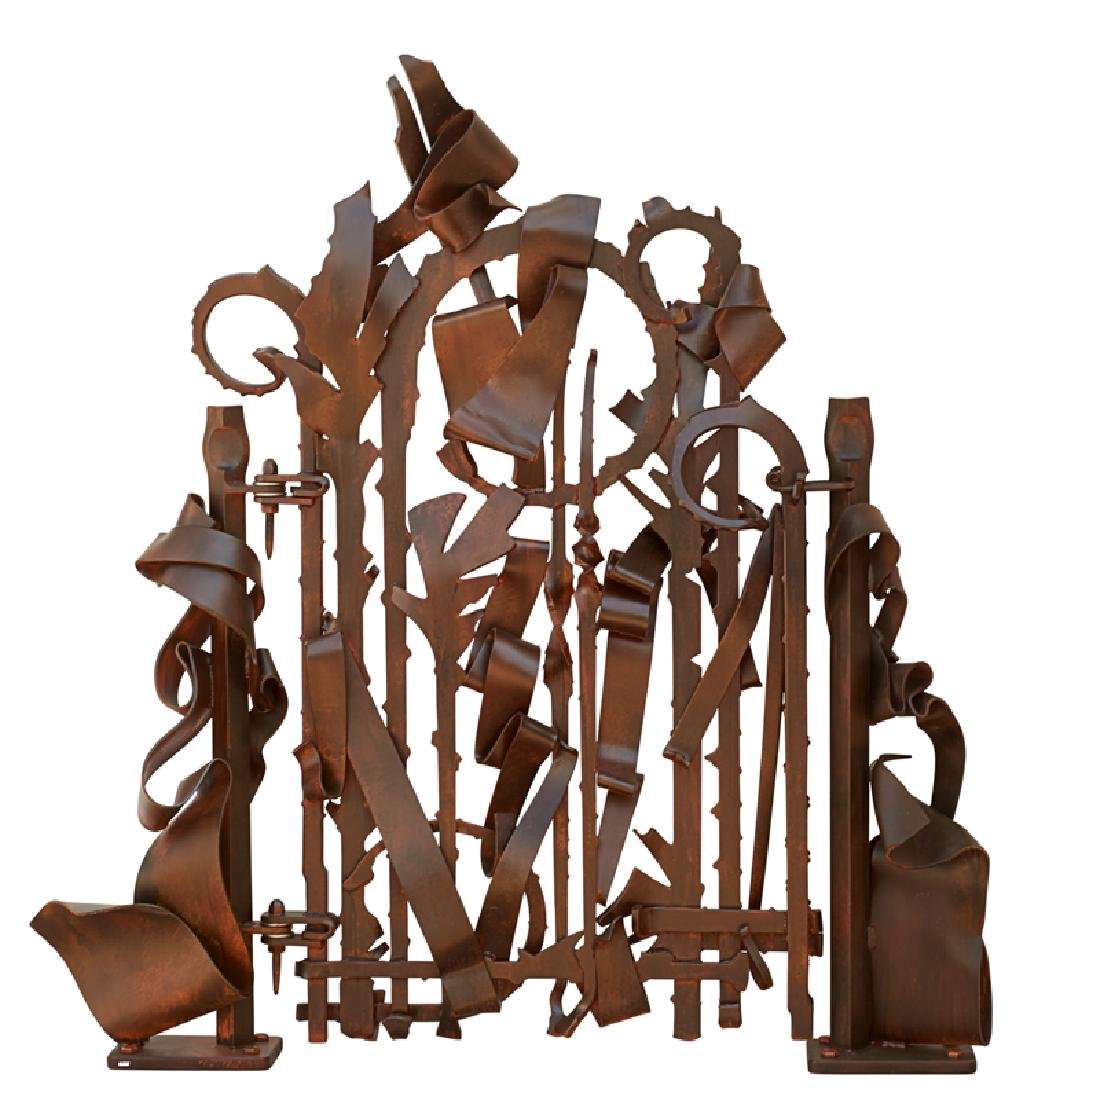 ALBERT PALEY Untitled (Garden Gate) - 2